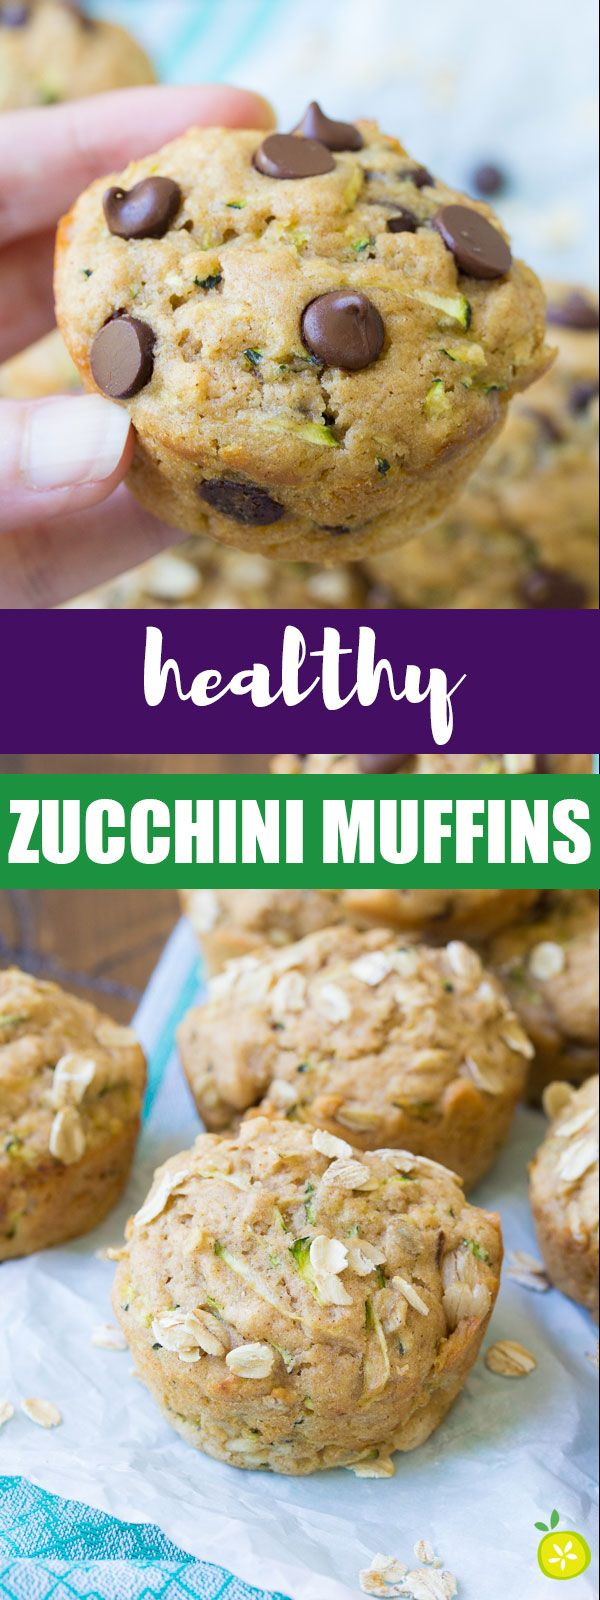 Healthy Zucchini Muffins, made with chocolate chips or oats. Buttermilk adds amazing flavor and makes these muffins so tender!   www.kristineskitchenblog.com